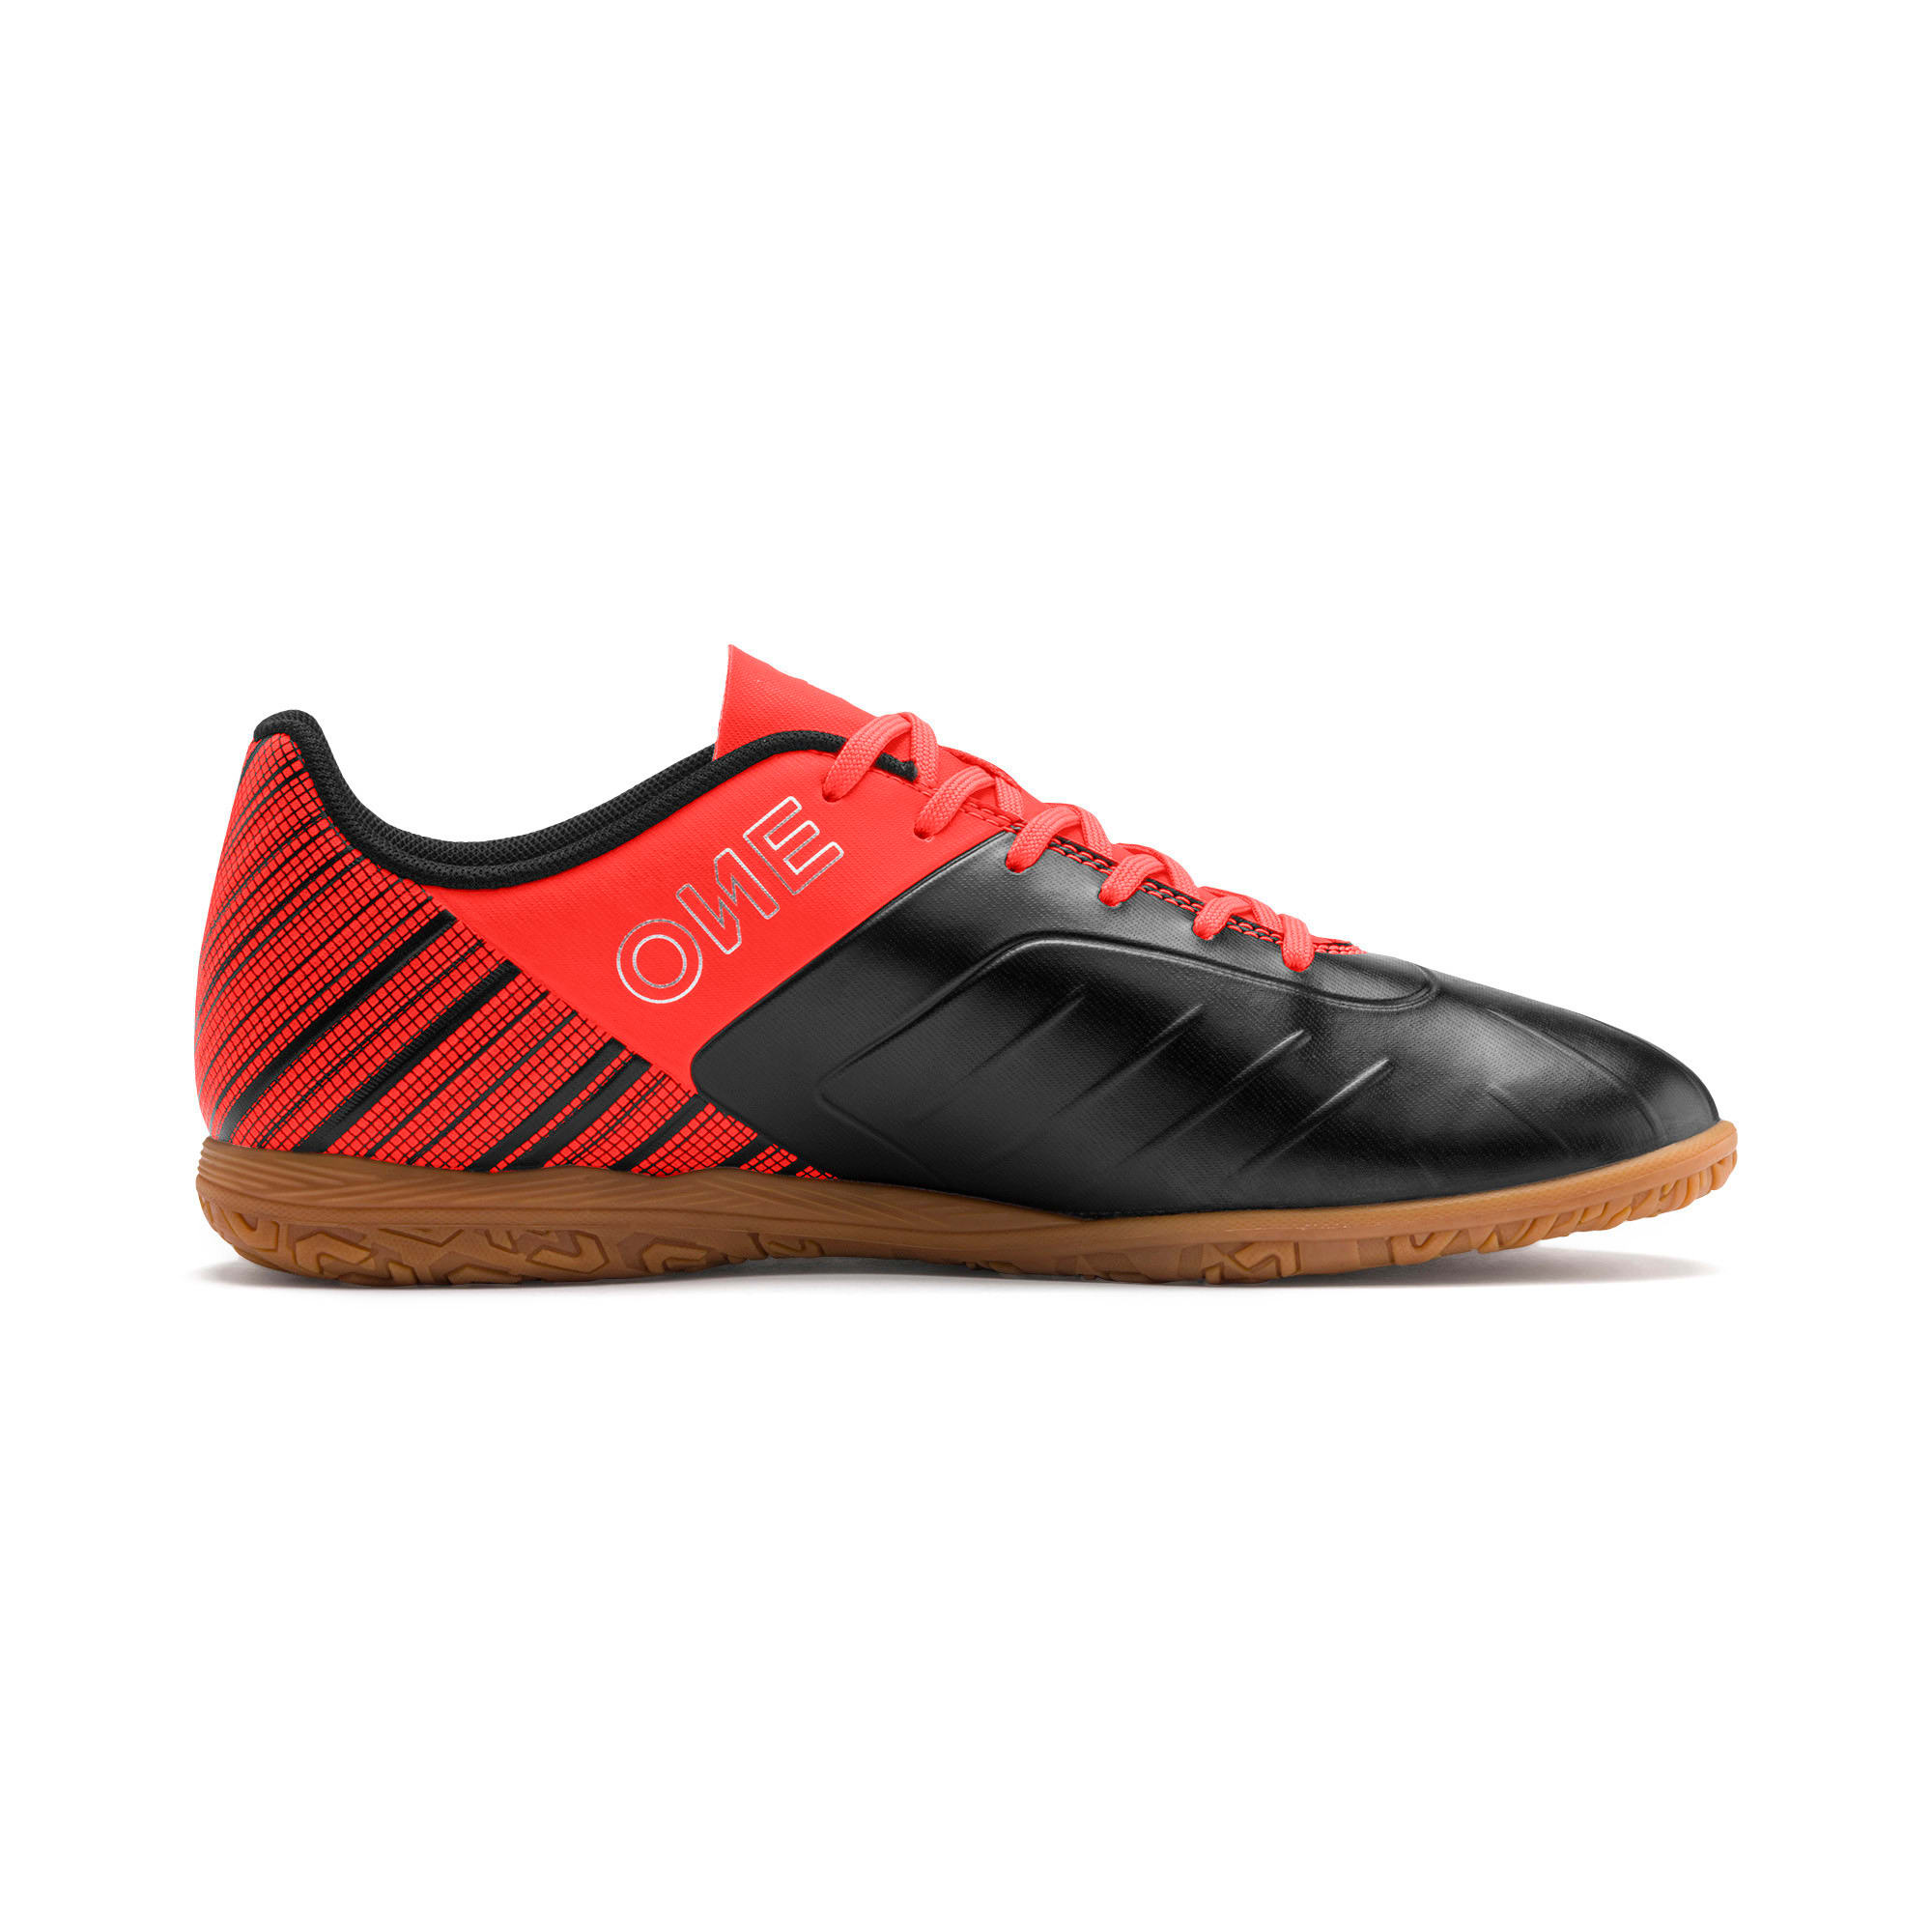 Thumbnail 6 of PUMA ONE 5.4 IT Men's Soccer Shoes, Black-Red-Silver-Gum, medium